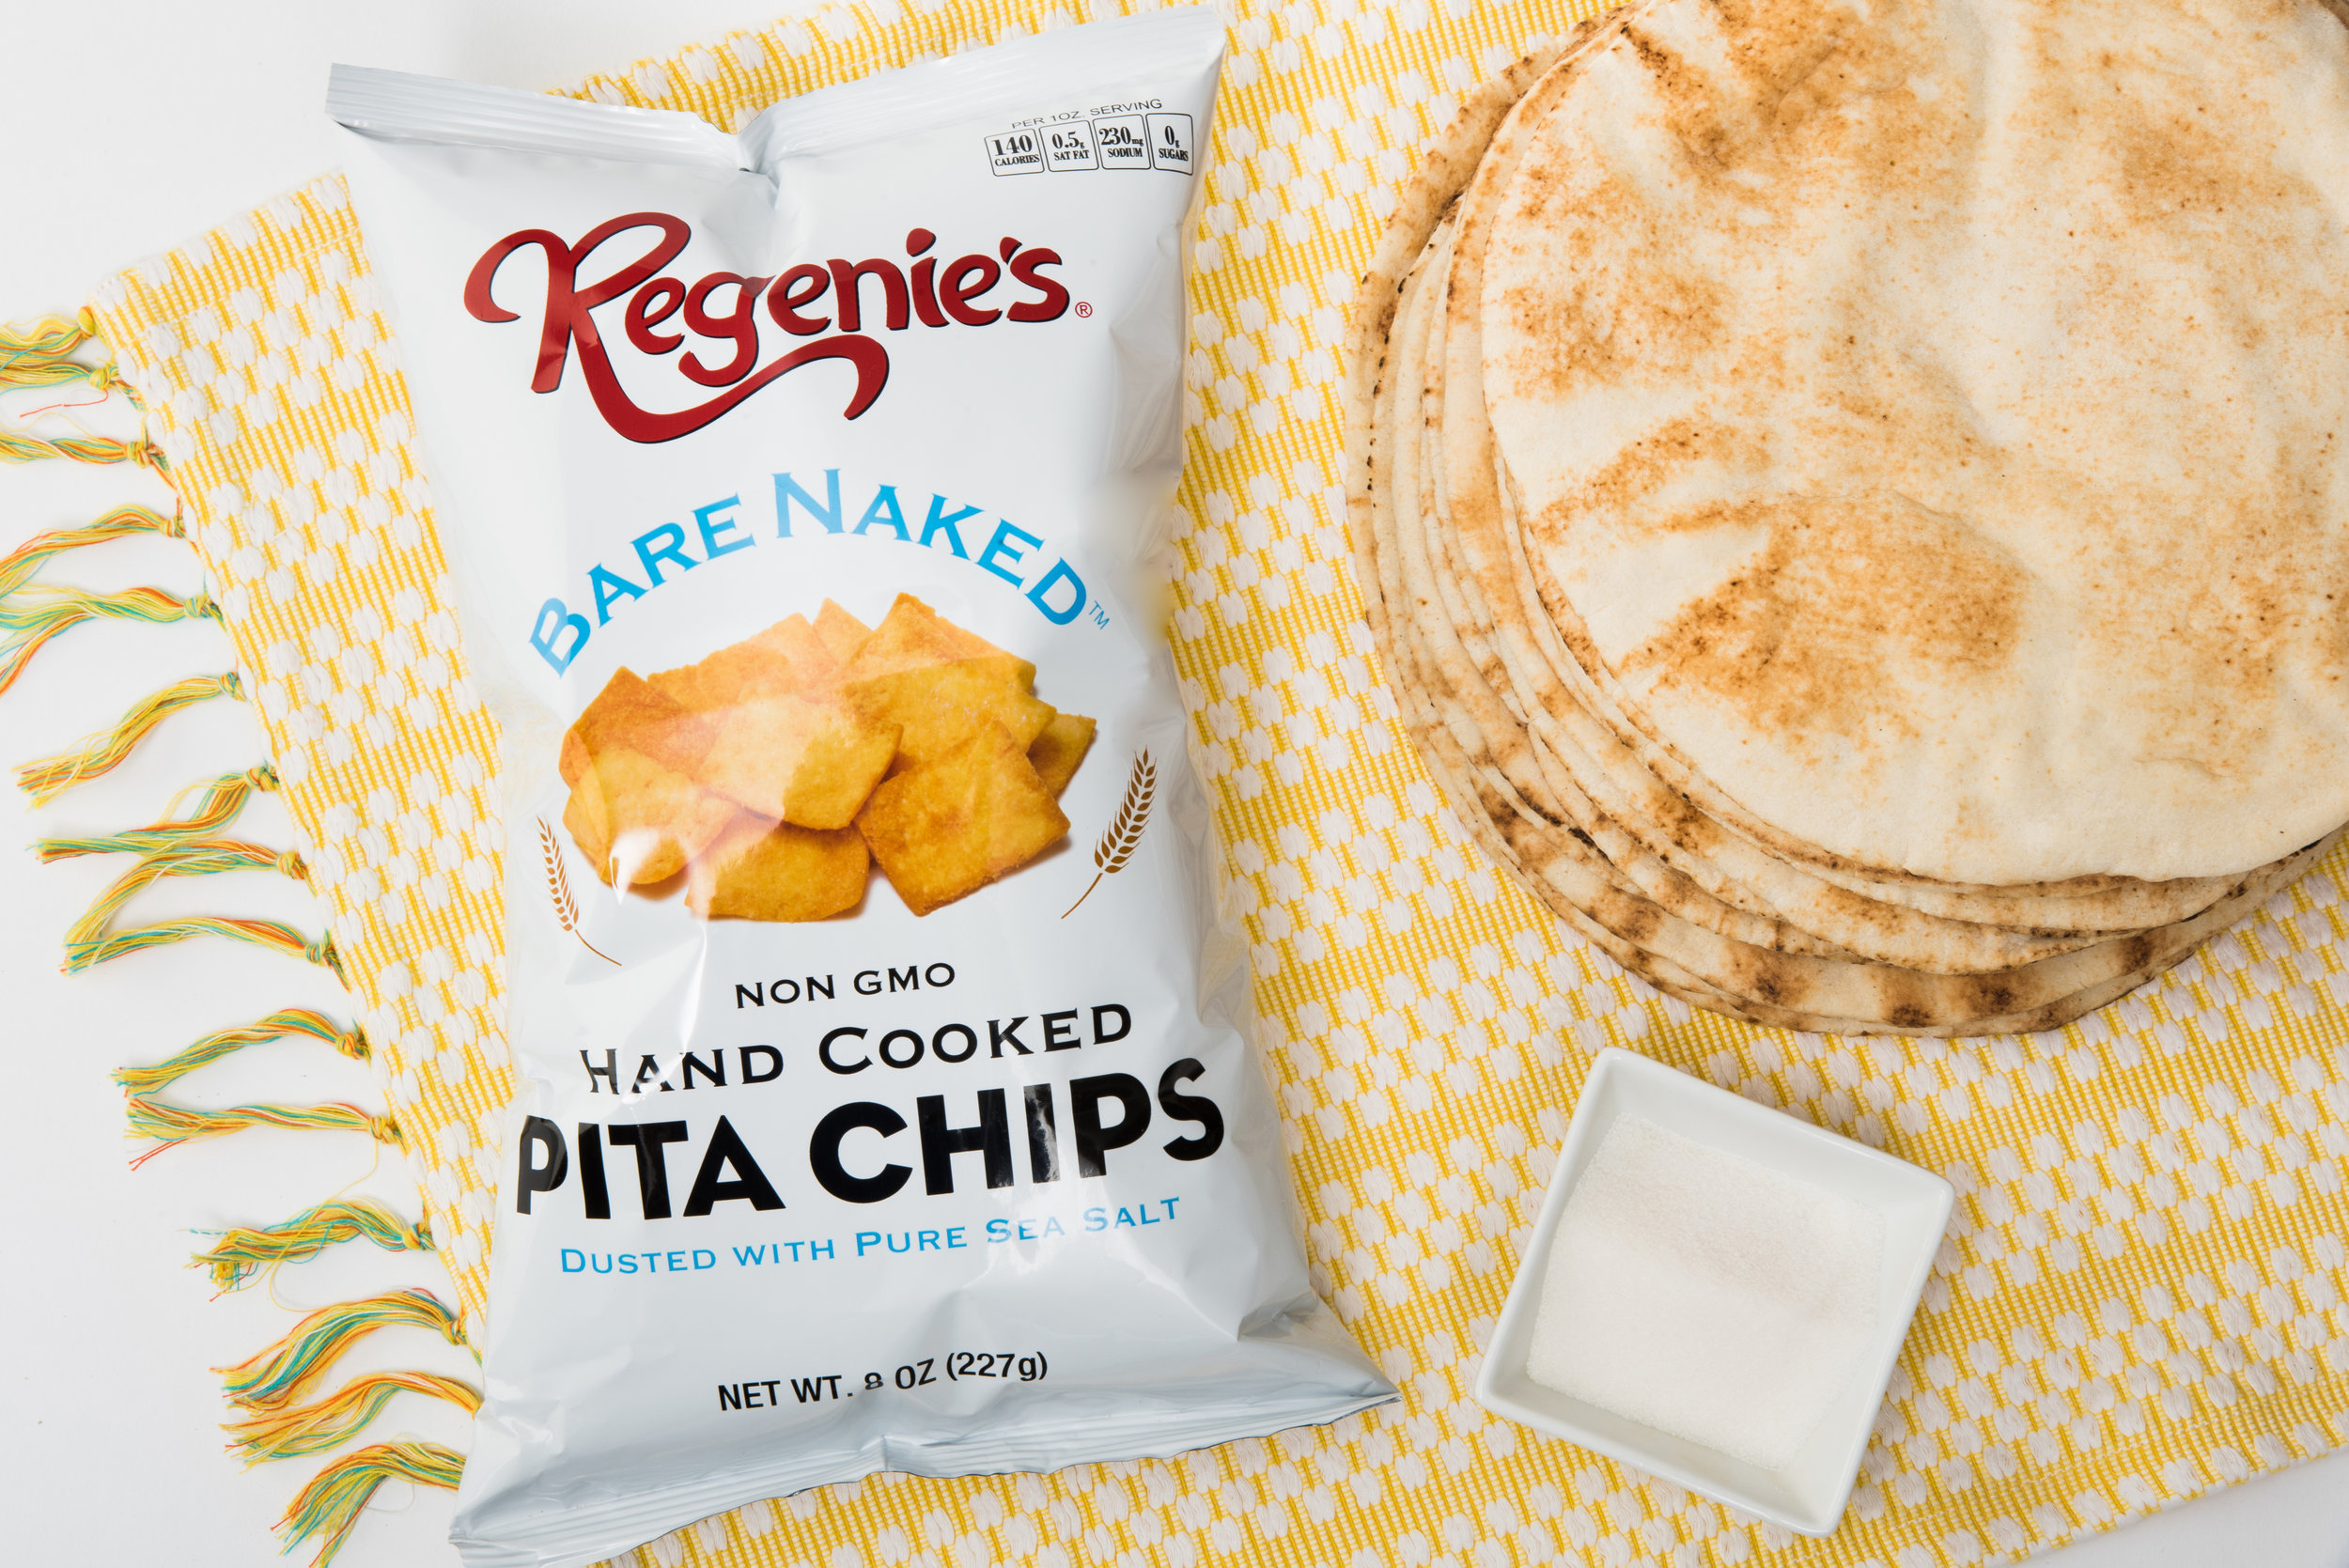 Pure and simple recipes - Join the flavor craze with our Regenie's pita chips. Our recipes include pure and simple recognizable ingredients that you can trust. Our flavorful and crunchy pita chips can be eaten straight from the bag anytime and anywhere. Try using them in your favorite recipe to add different textures and flavor or serve as a compliment to your favorite dips and spreads.A Pita-ri-fic choice